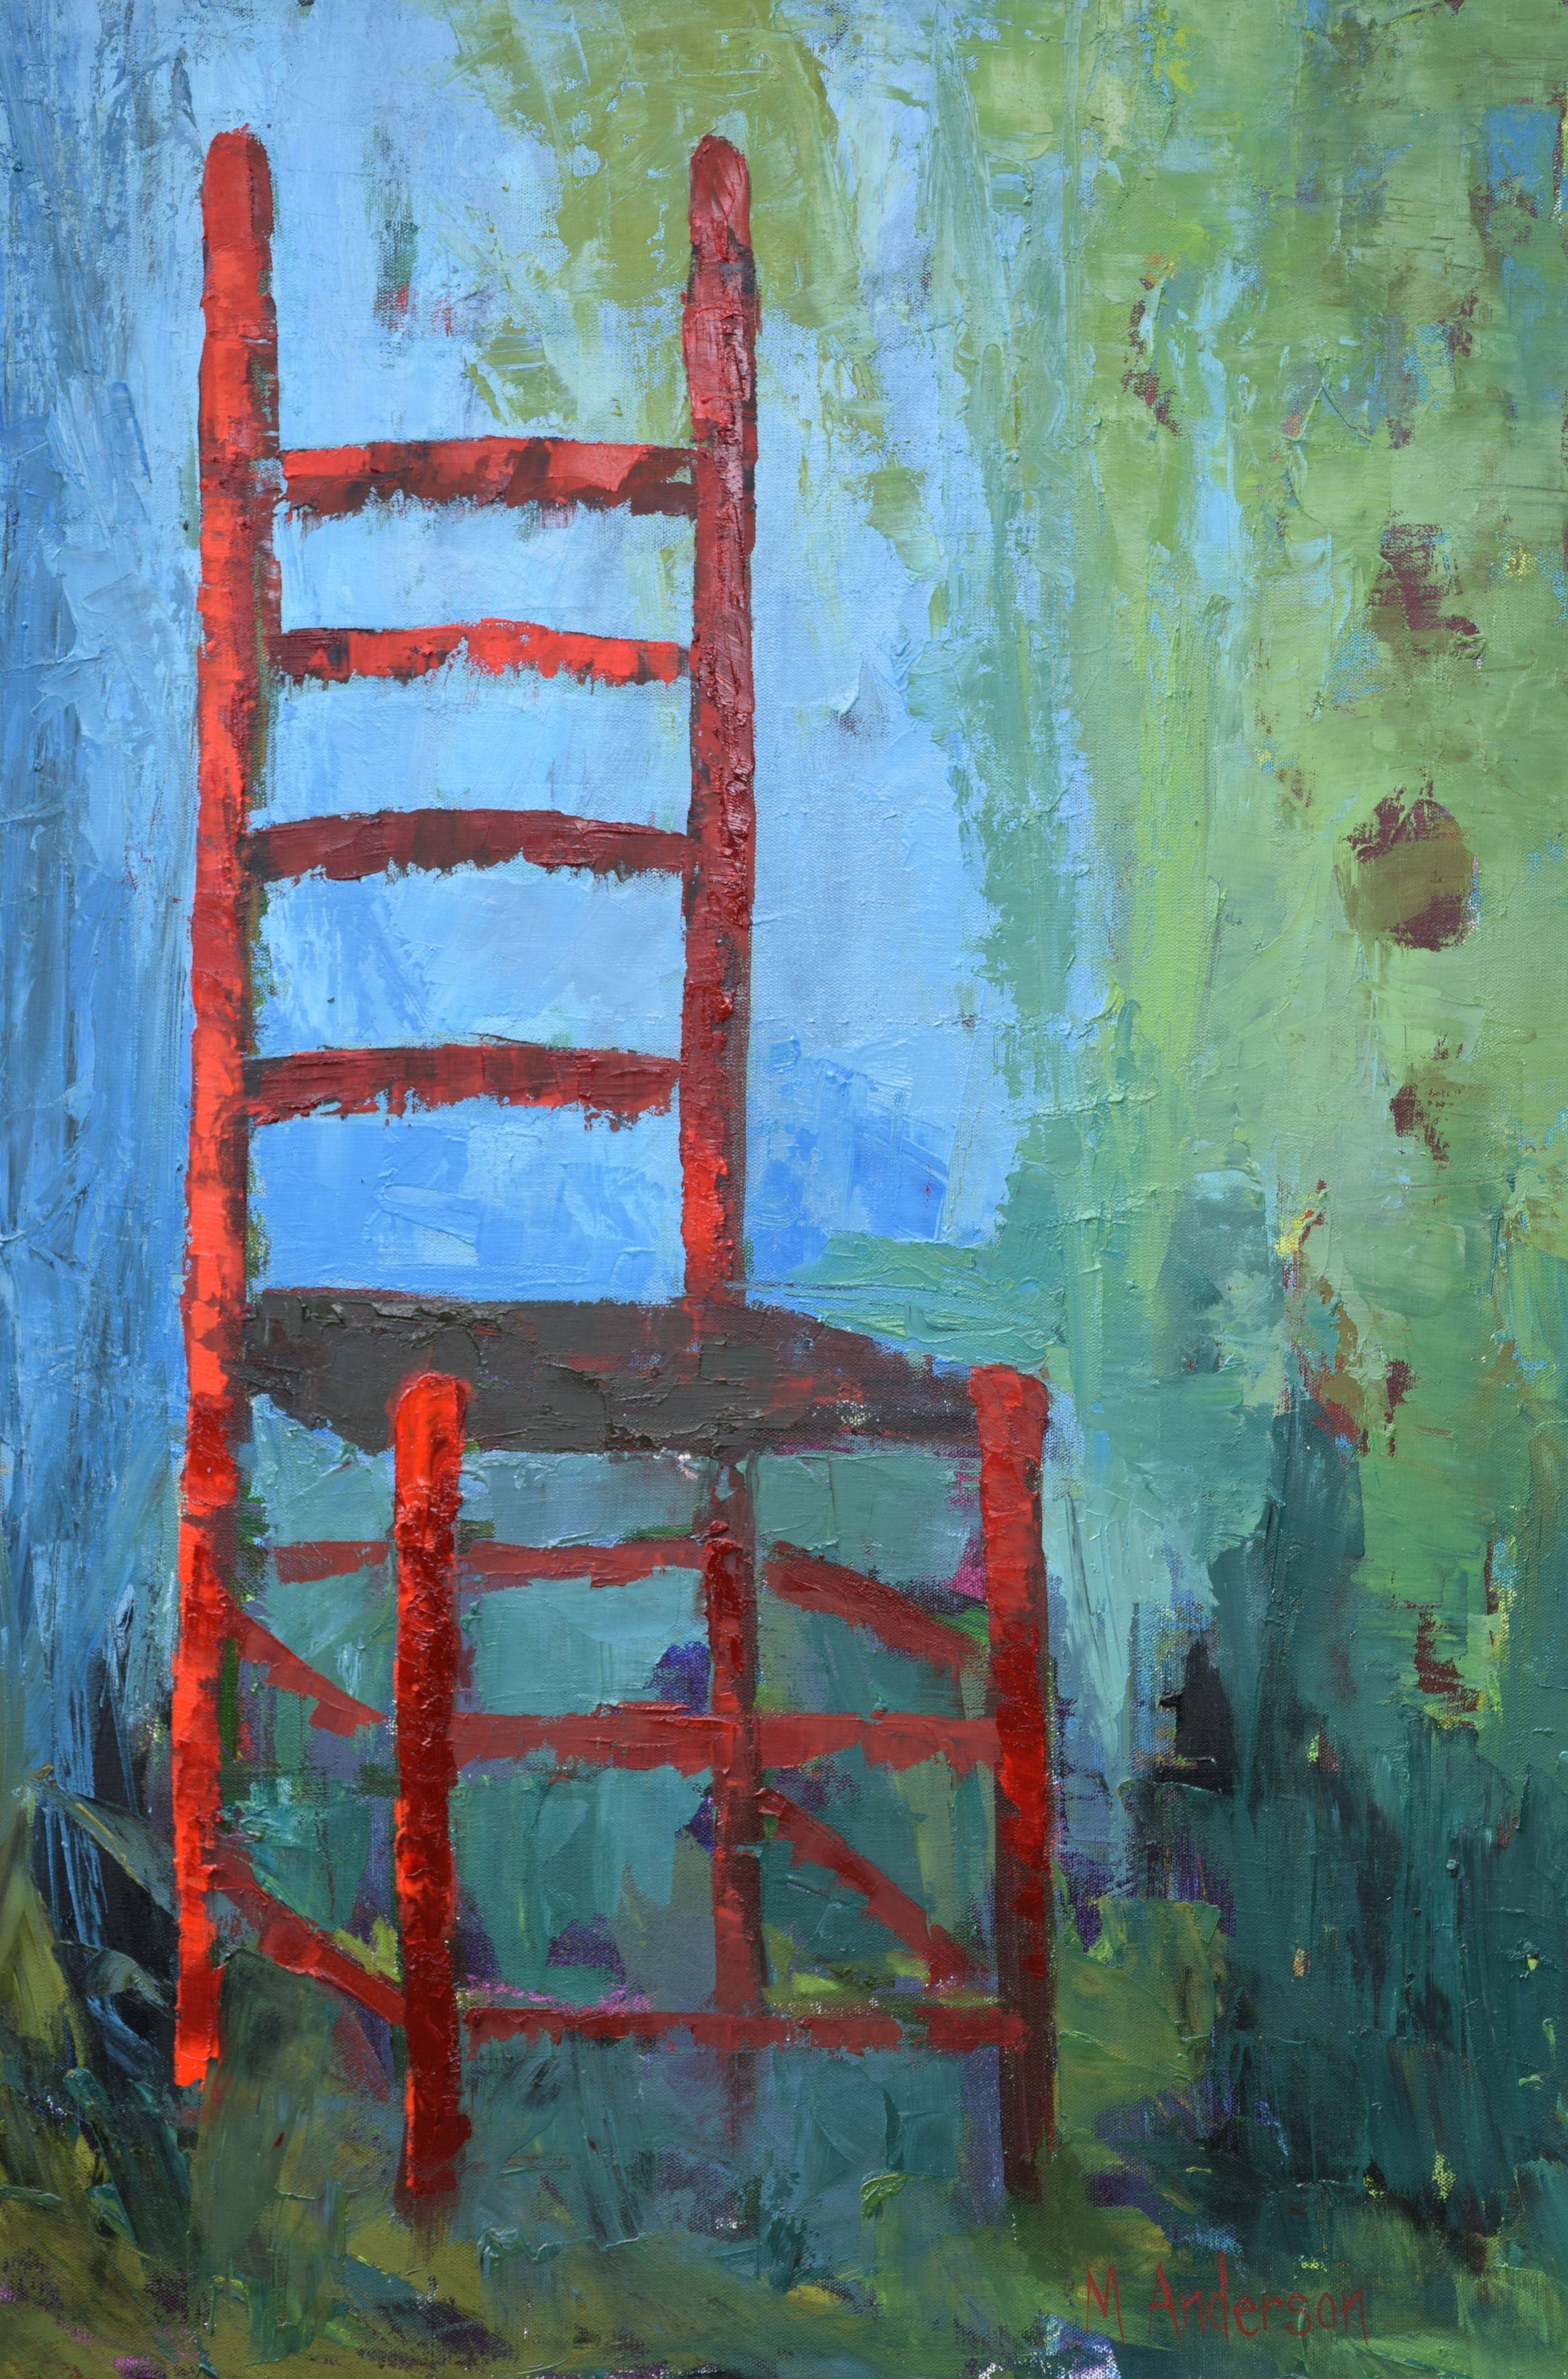 The Red Ladderback (36x48 Canvas) - Sold